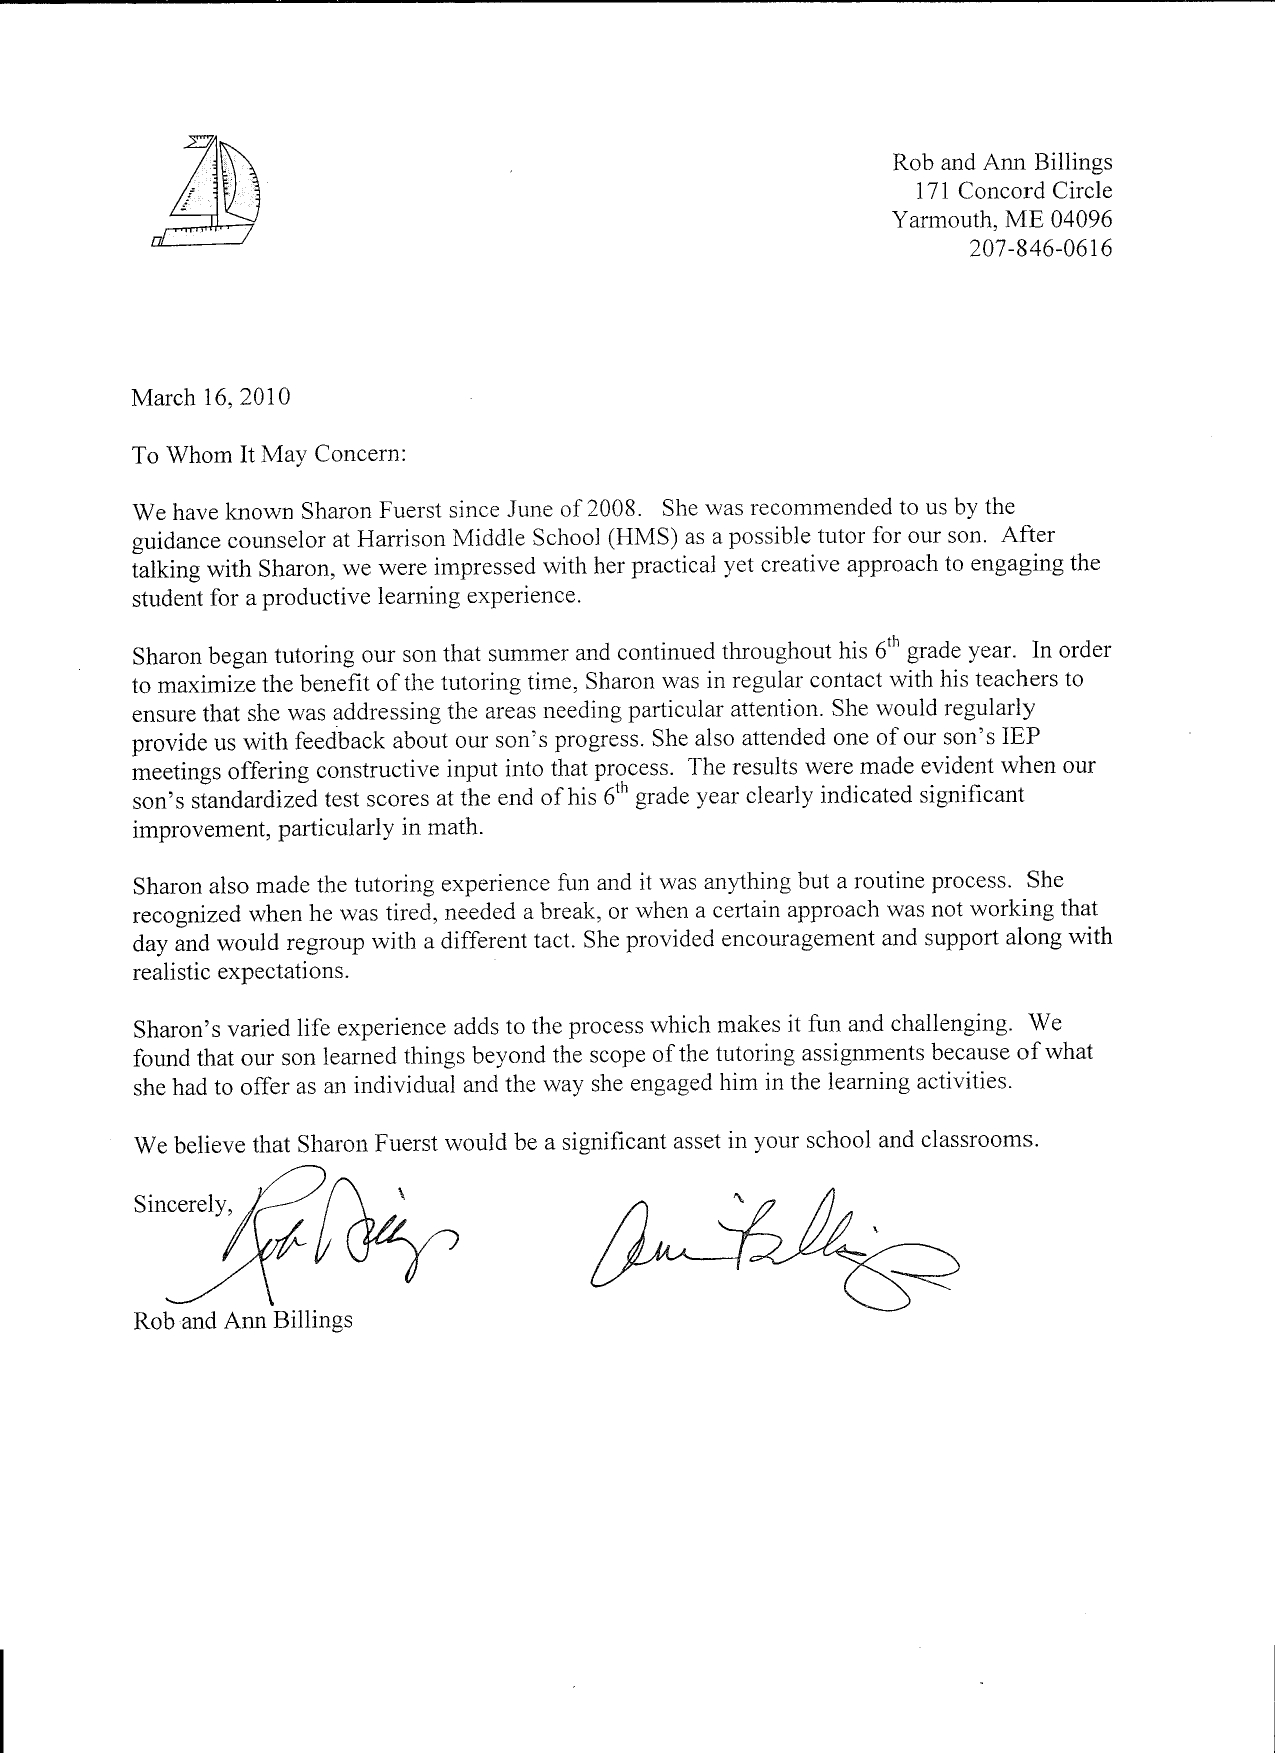 Letter Of Recognition Examples Recommendation Letter Sample For